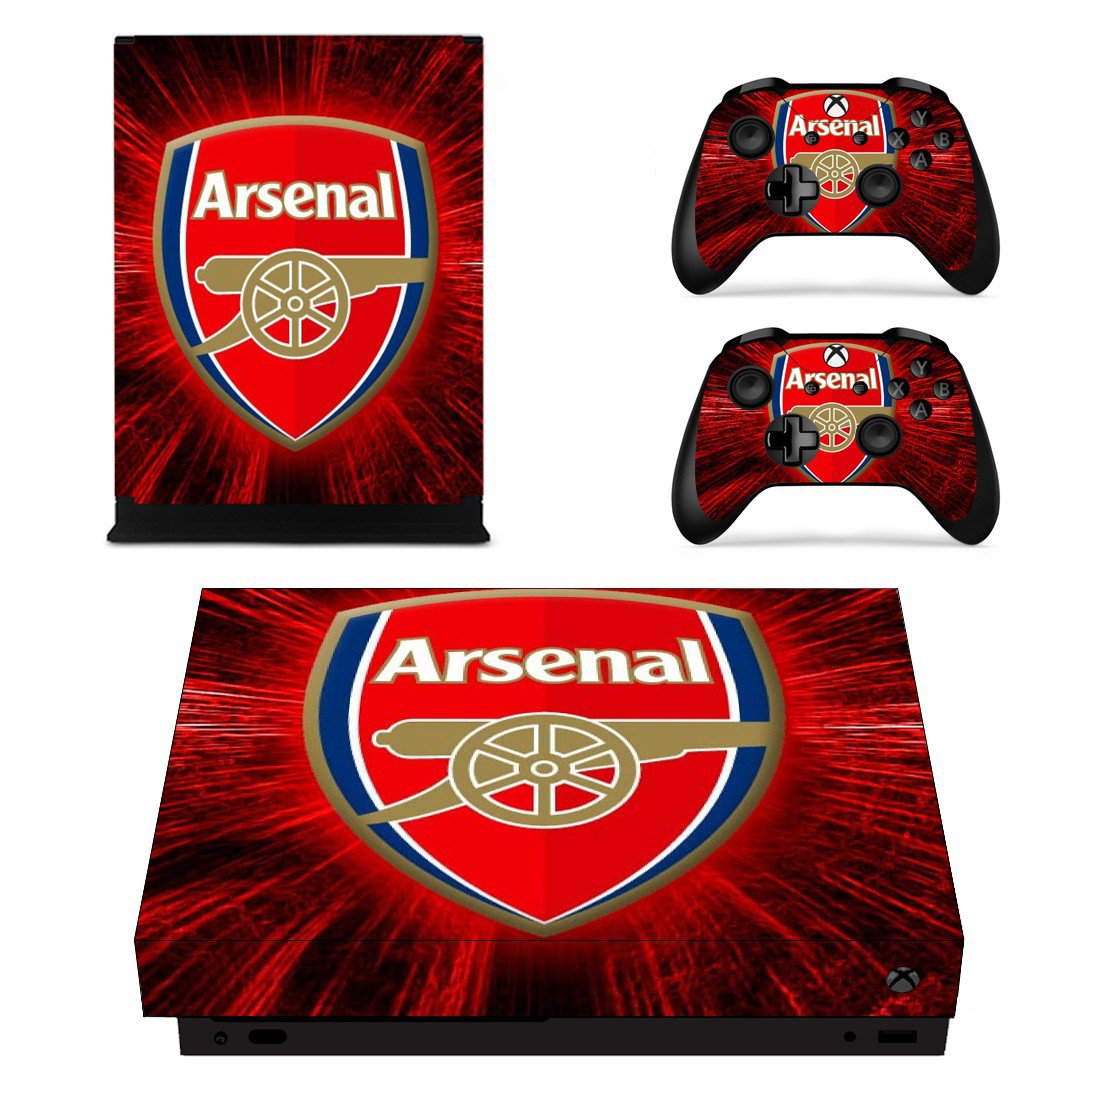 Arsenal FC decal skin sticker for Xbox One X console and controllers